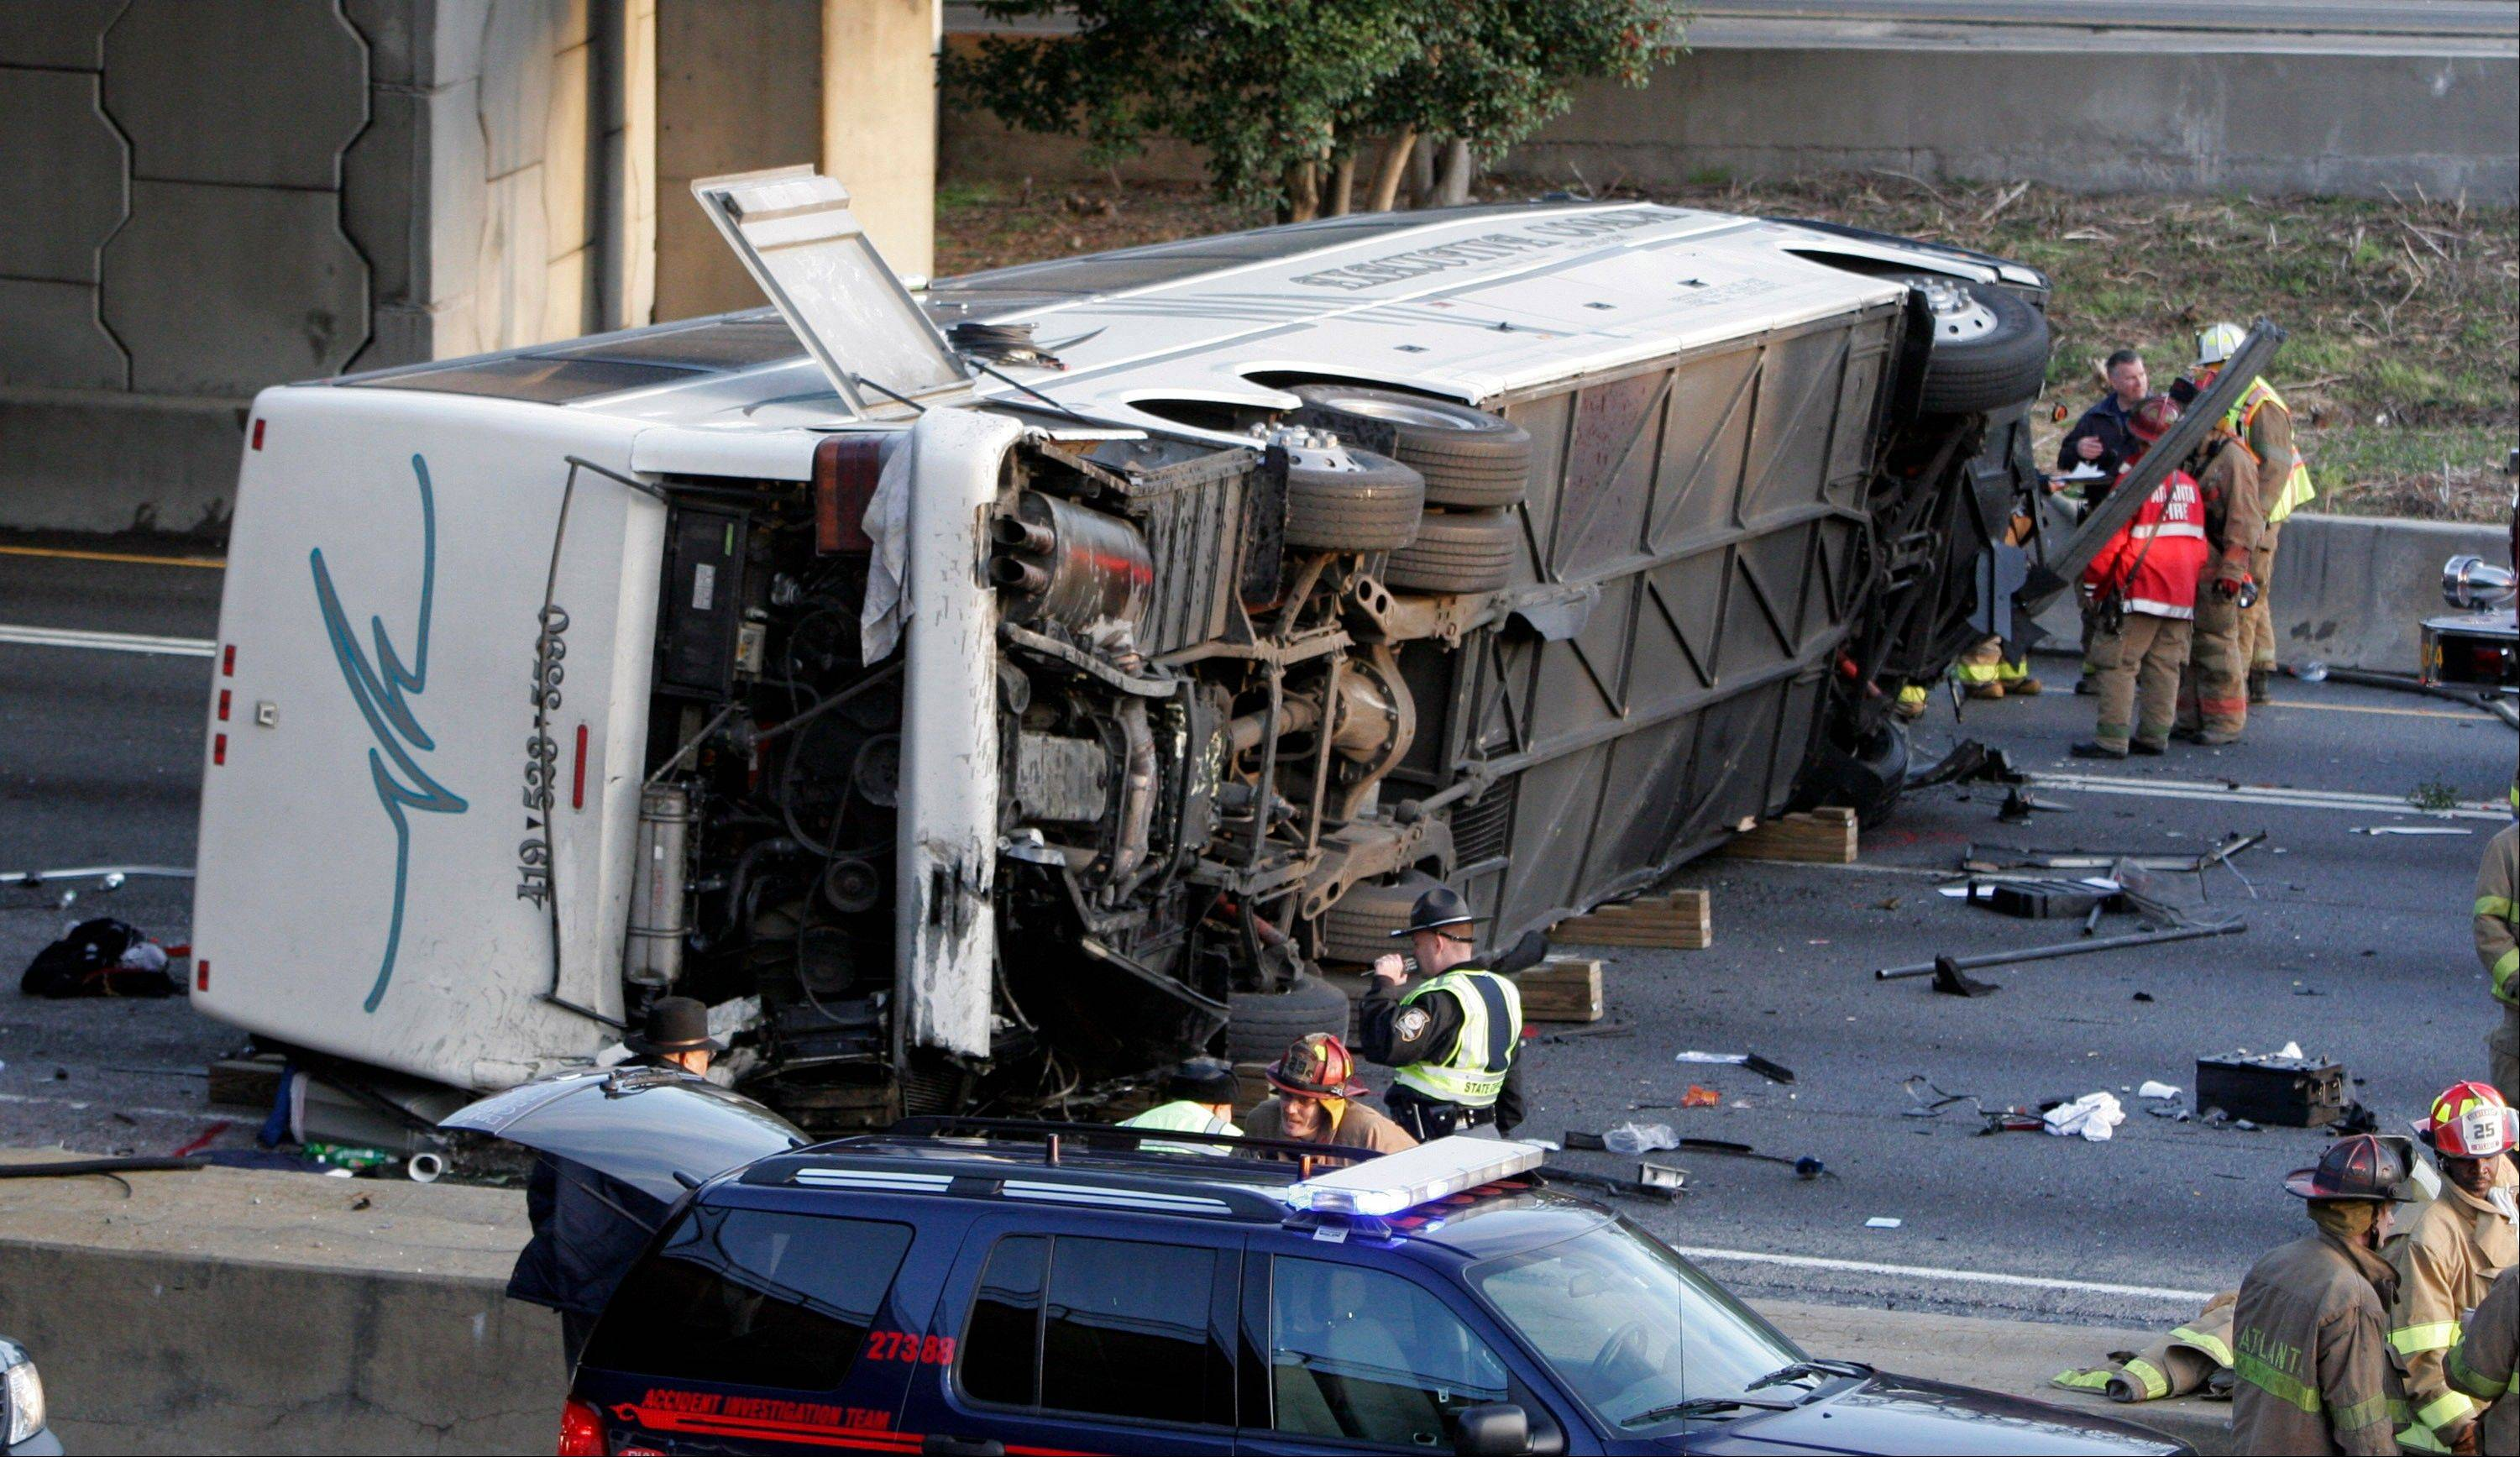 This March 2, 2007, file photo shows a charter bus carrying the Bluffton University baseball team from Ohio after it plunged off a highway ramp in Atlanta and slammed into the I-75 pavement below. Five players, the bus driver and his wife were killed. Twenty-eight others were injured.